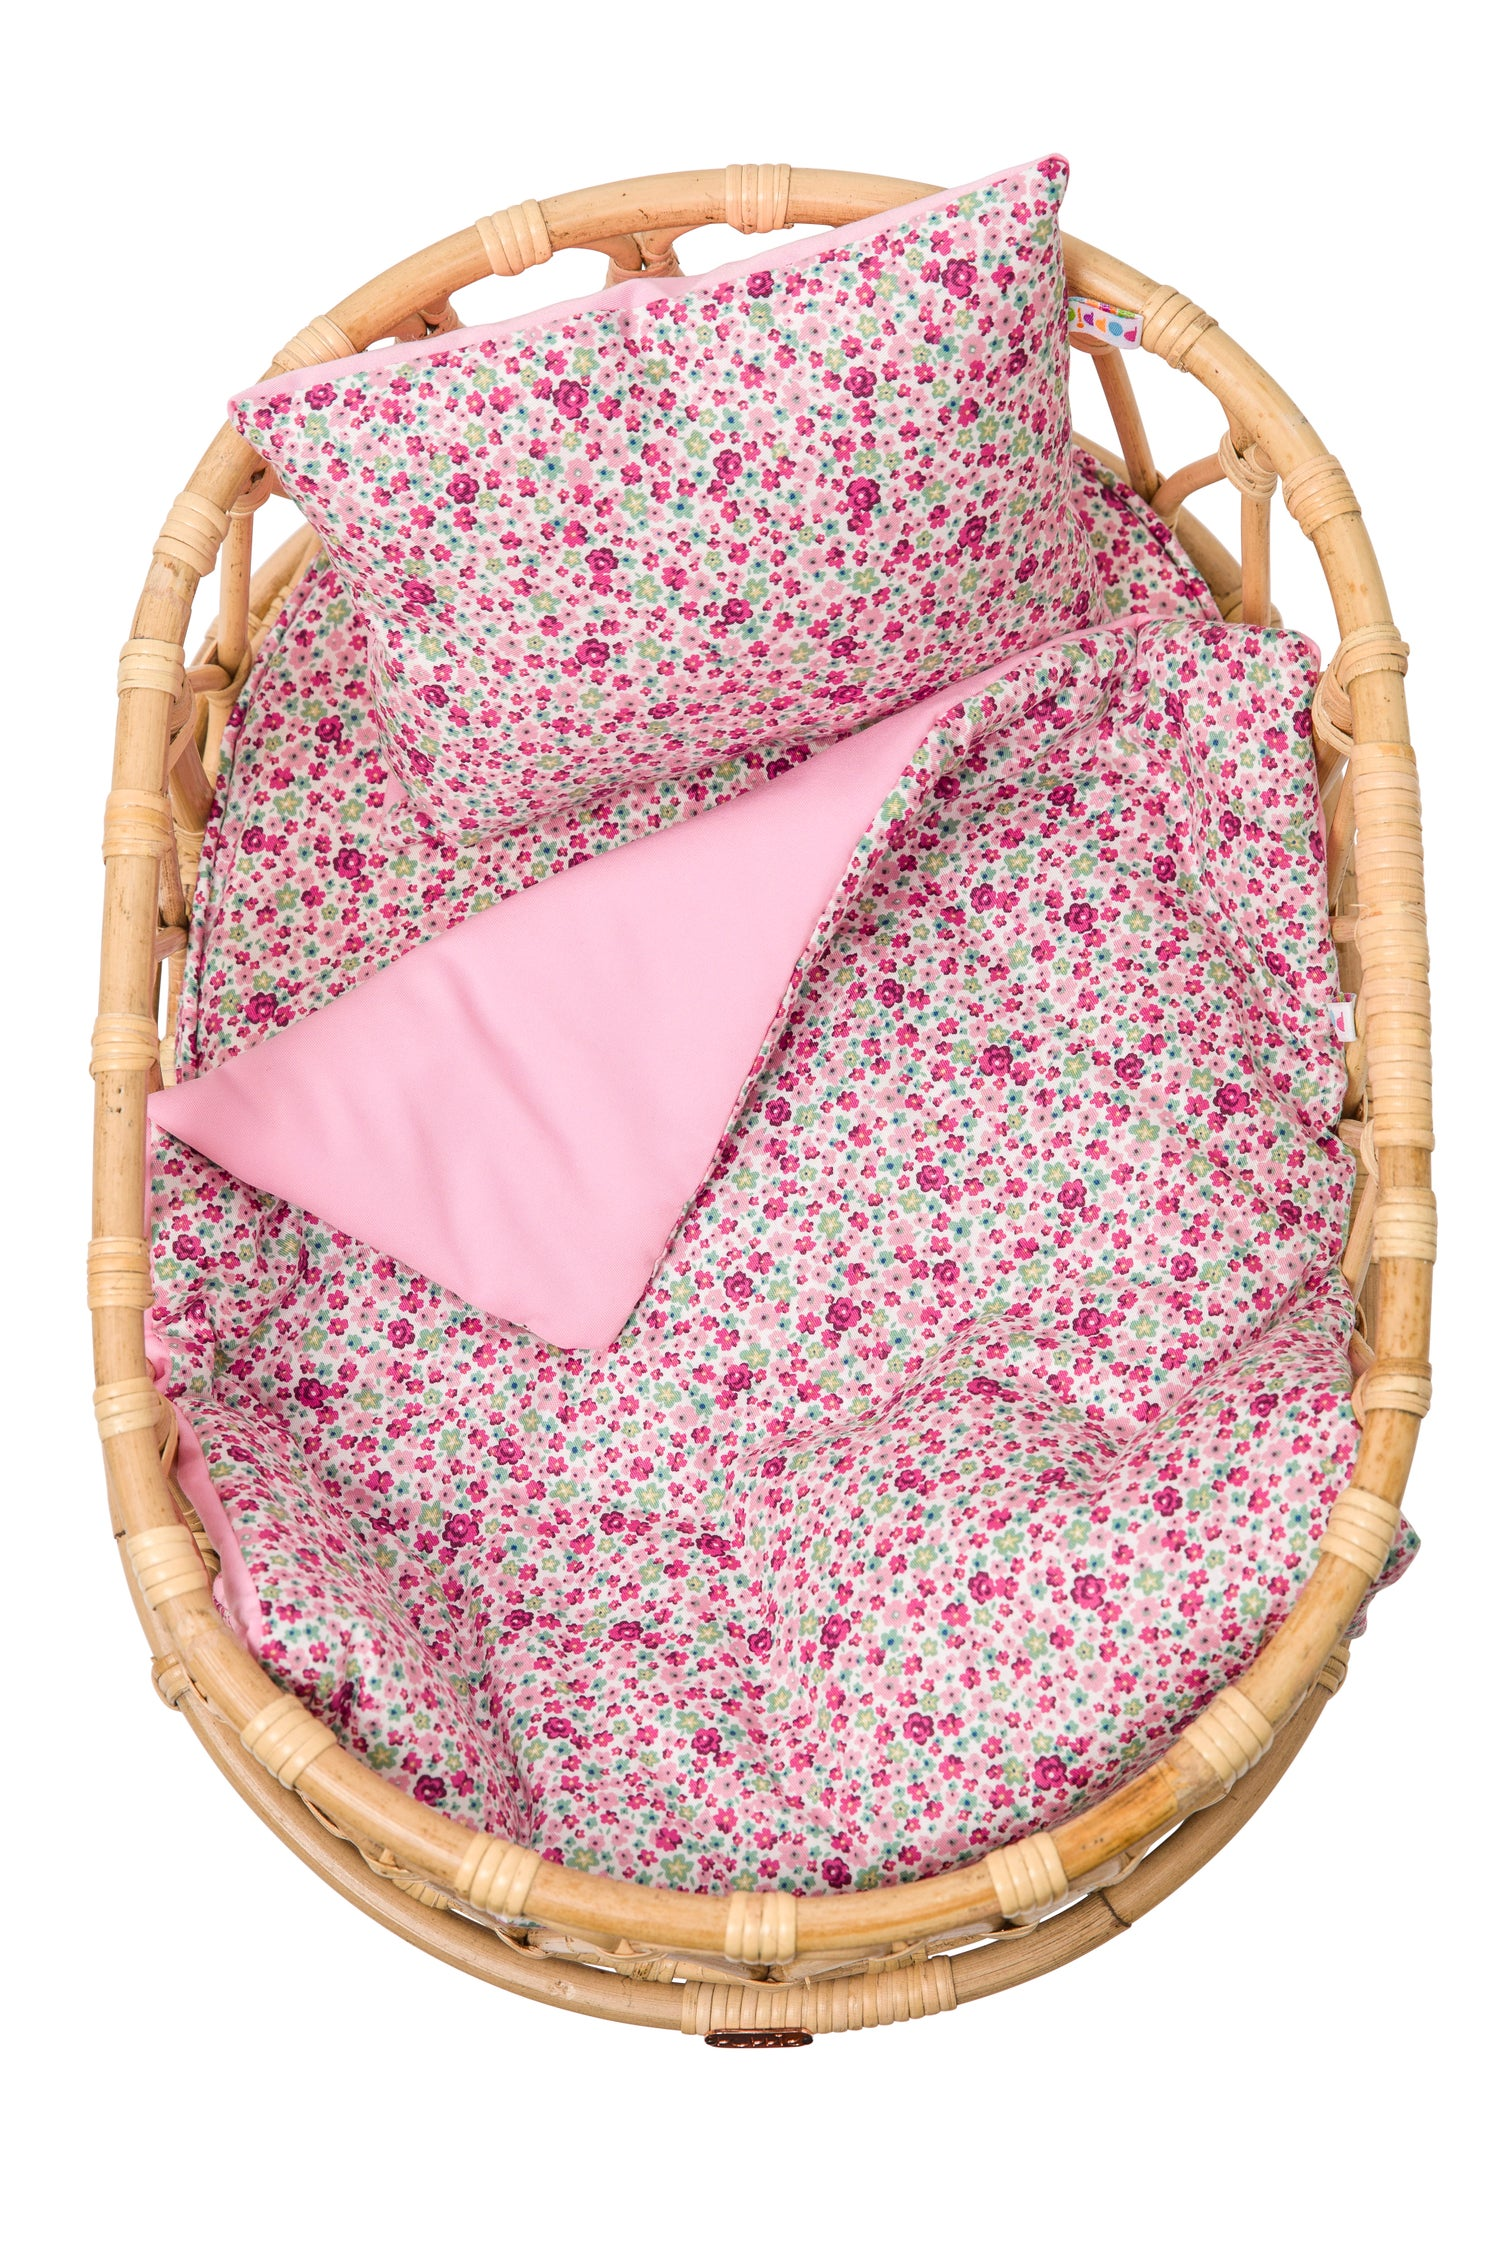 Image of Pink & Meadow Duvet and Pillow for Poppie Crib and Poppie Day bed